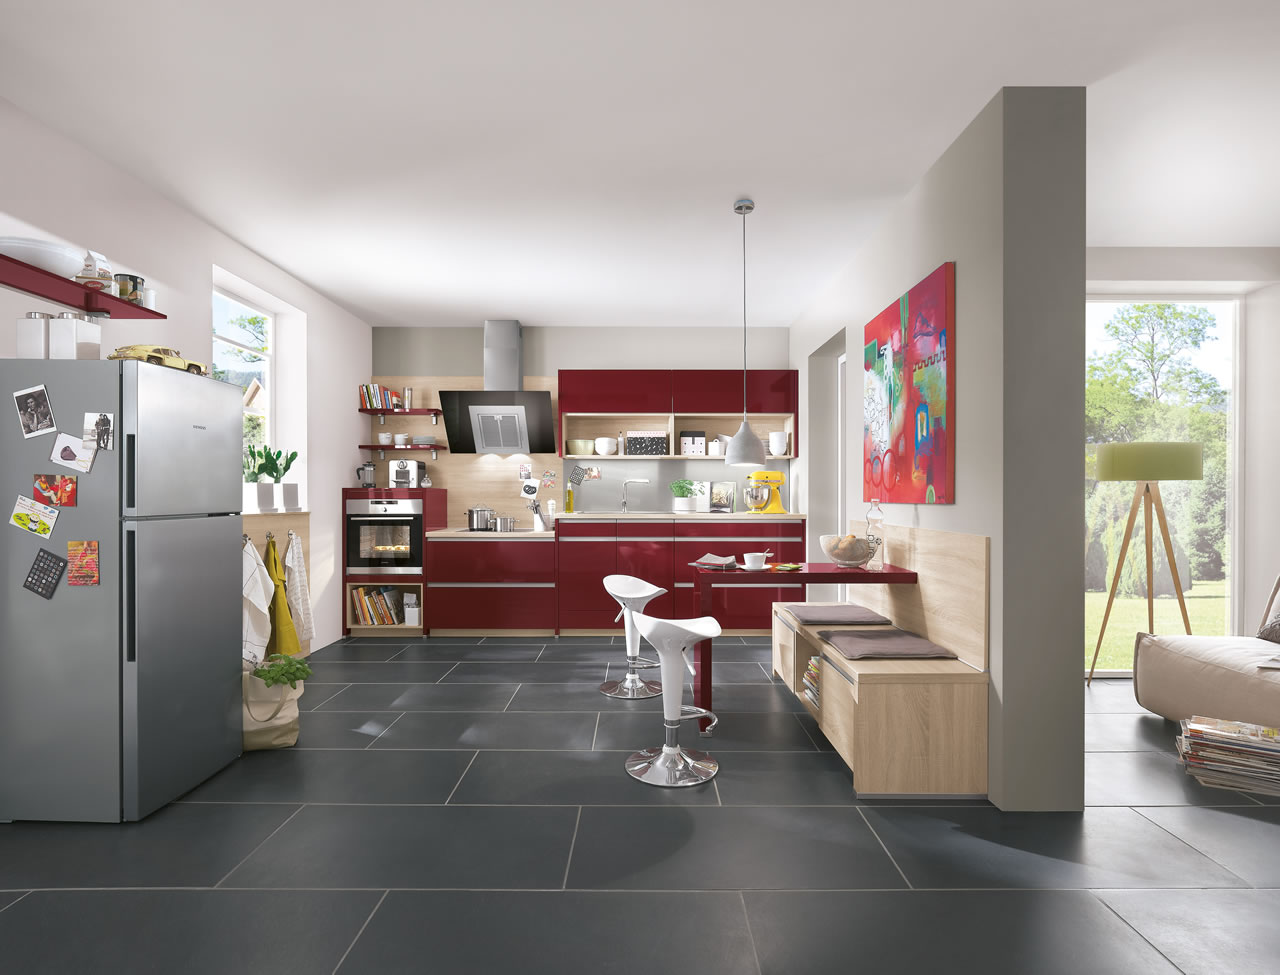 Nobilia Küchen N Line I Home Kitchens Nobilia Kitchens German Kitchens Line N